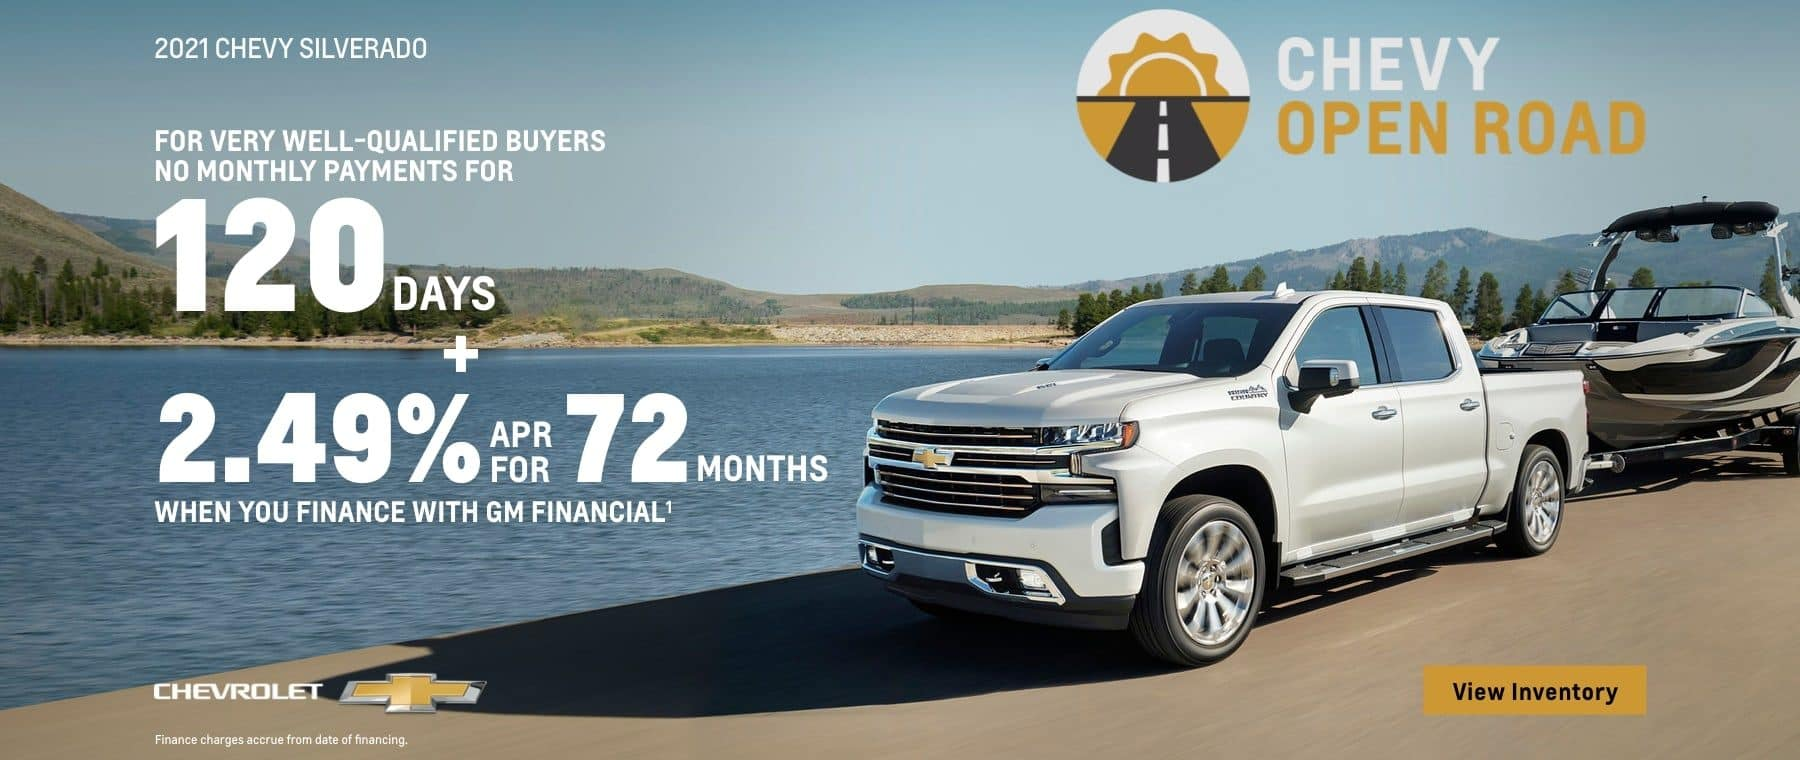 2021 Chevy Silverado 1500. No monthly payments for 120 days for very well-qualified buyers. Plus, 2.49% APR for 72 months when you finance with GM Financial.